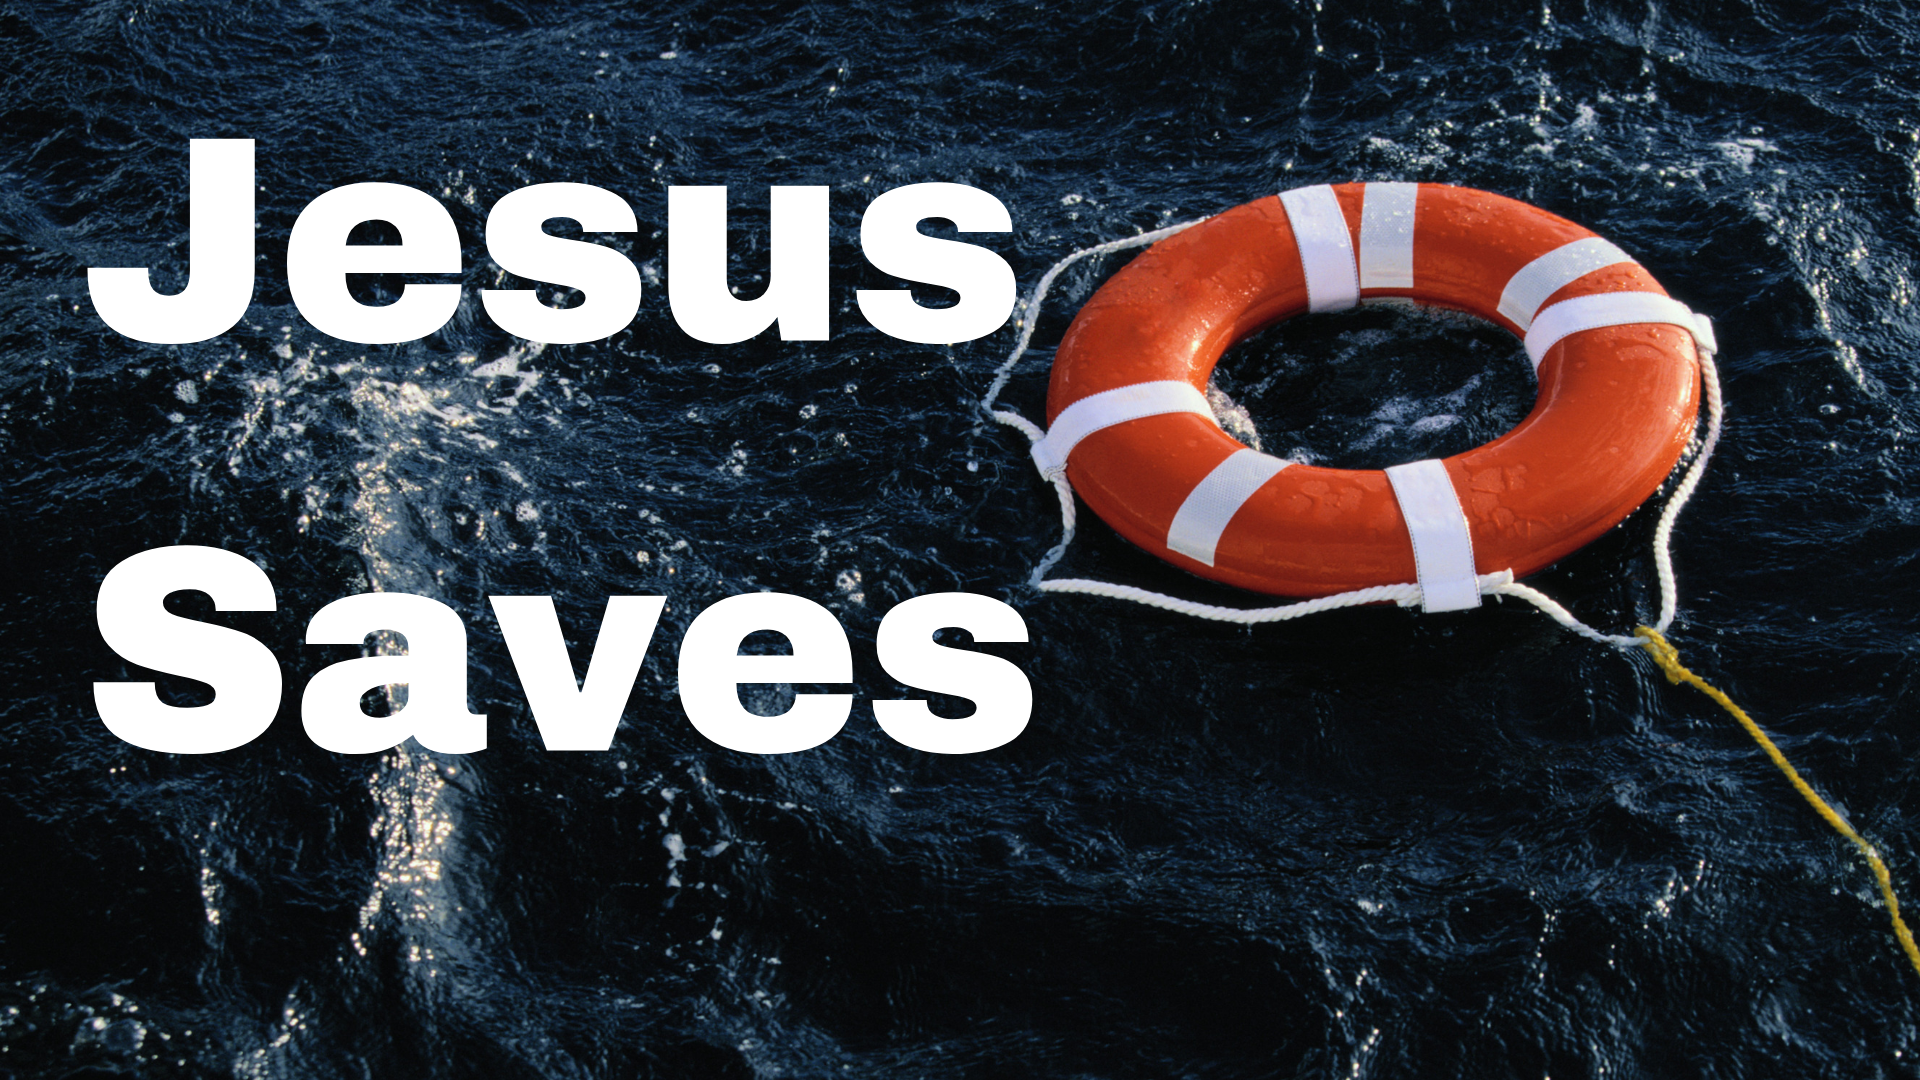 3 jesus saves .png